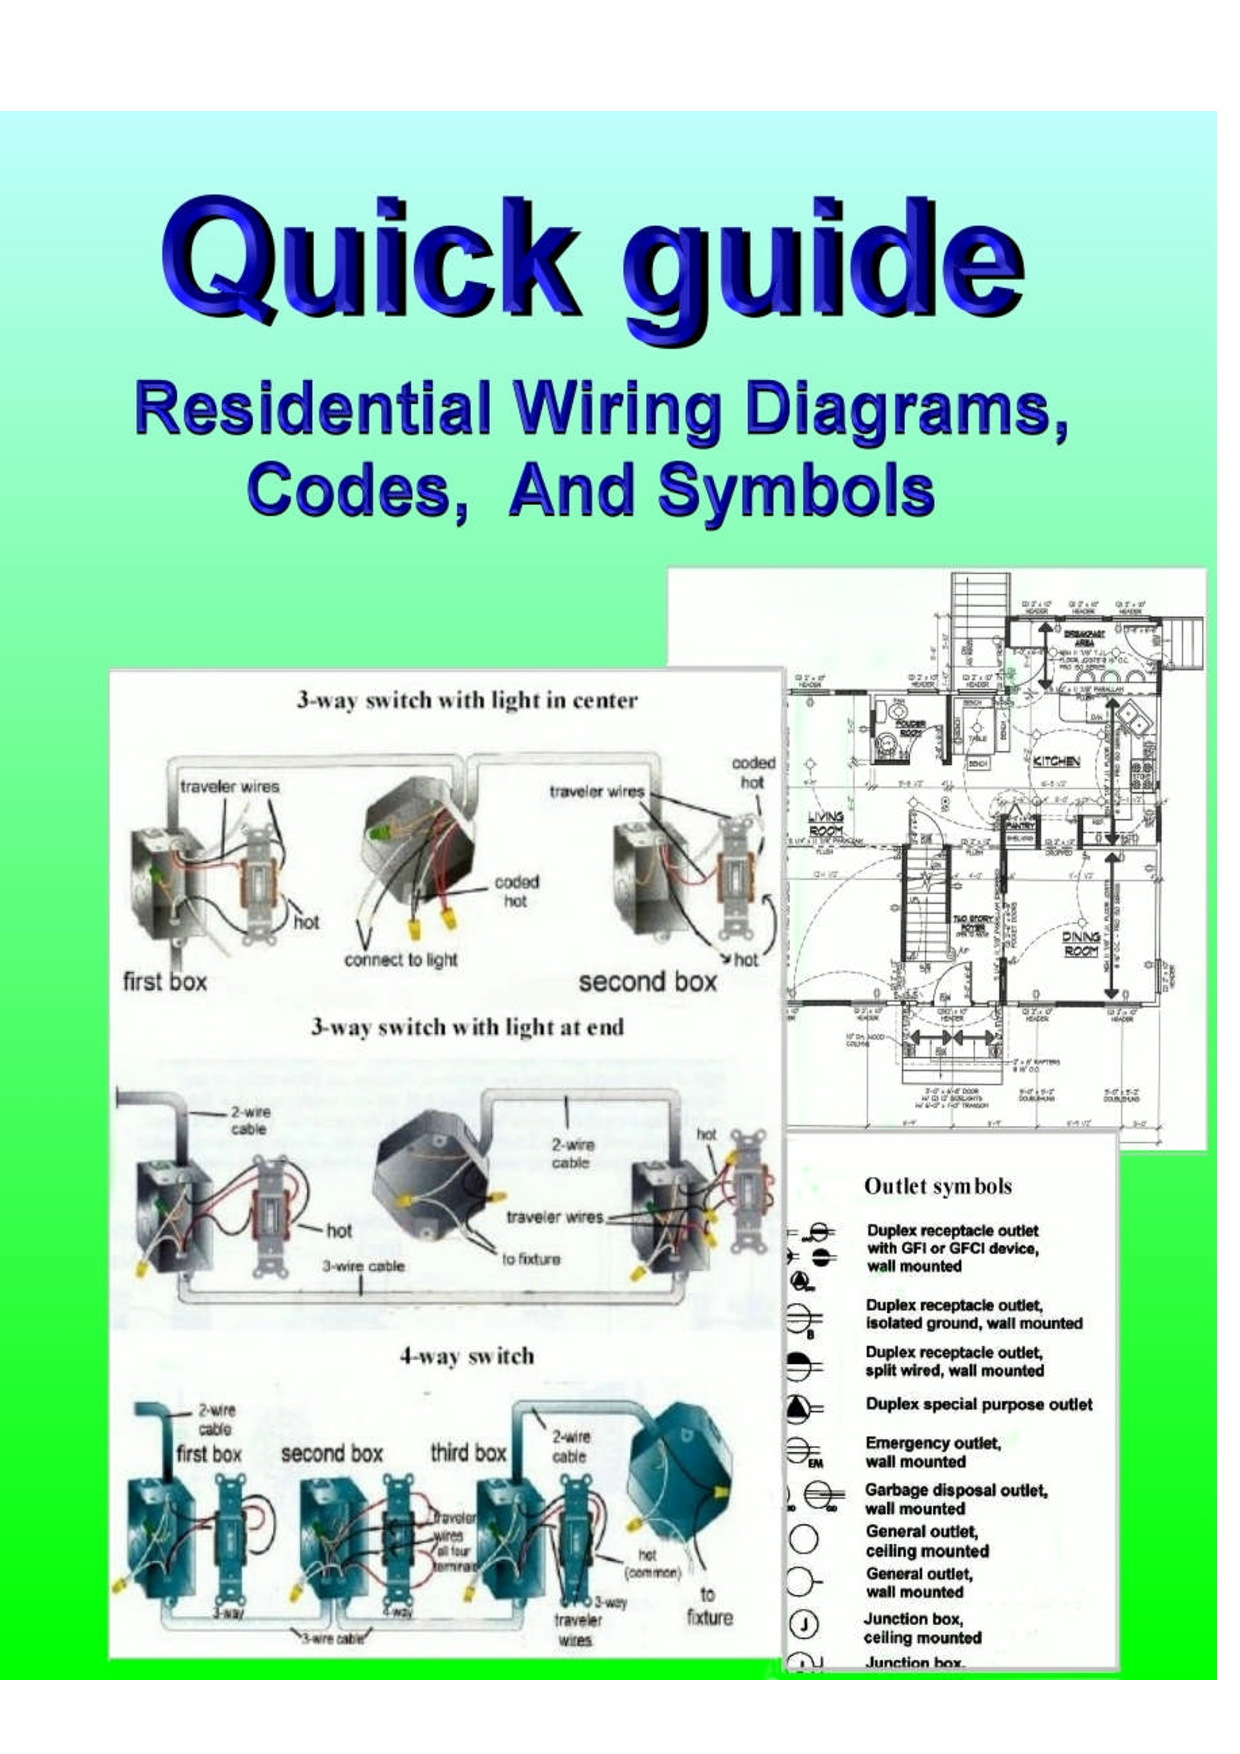 home electrical wiring diagrams.pdf download legal ... at home wiring basics home wiring basics with illustrations